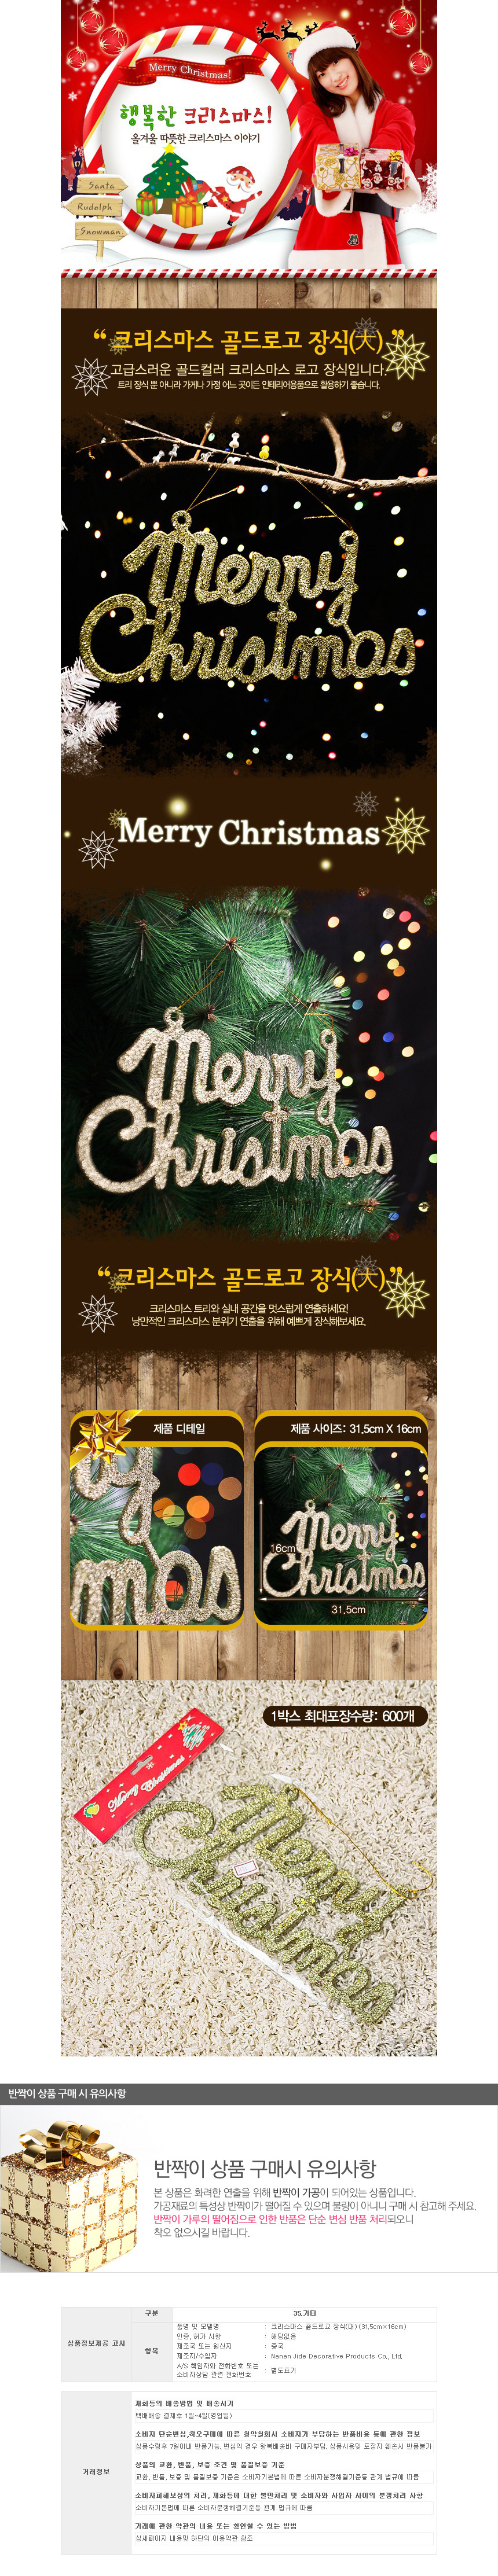 [ WINEQOK ] Christmas Goods / Christmas gold logo decoration. ×